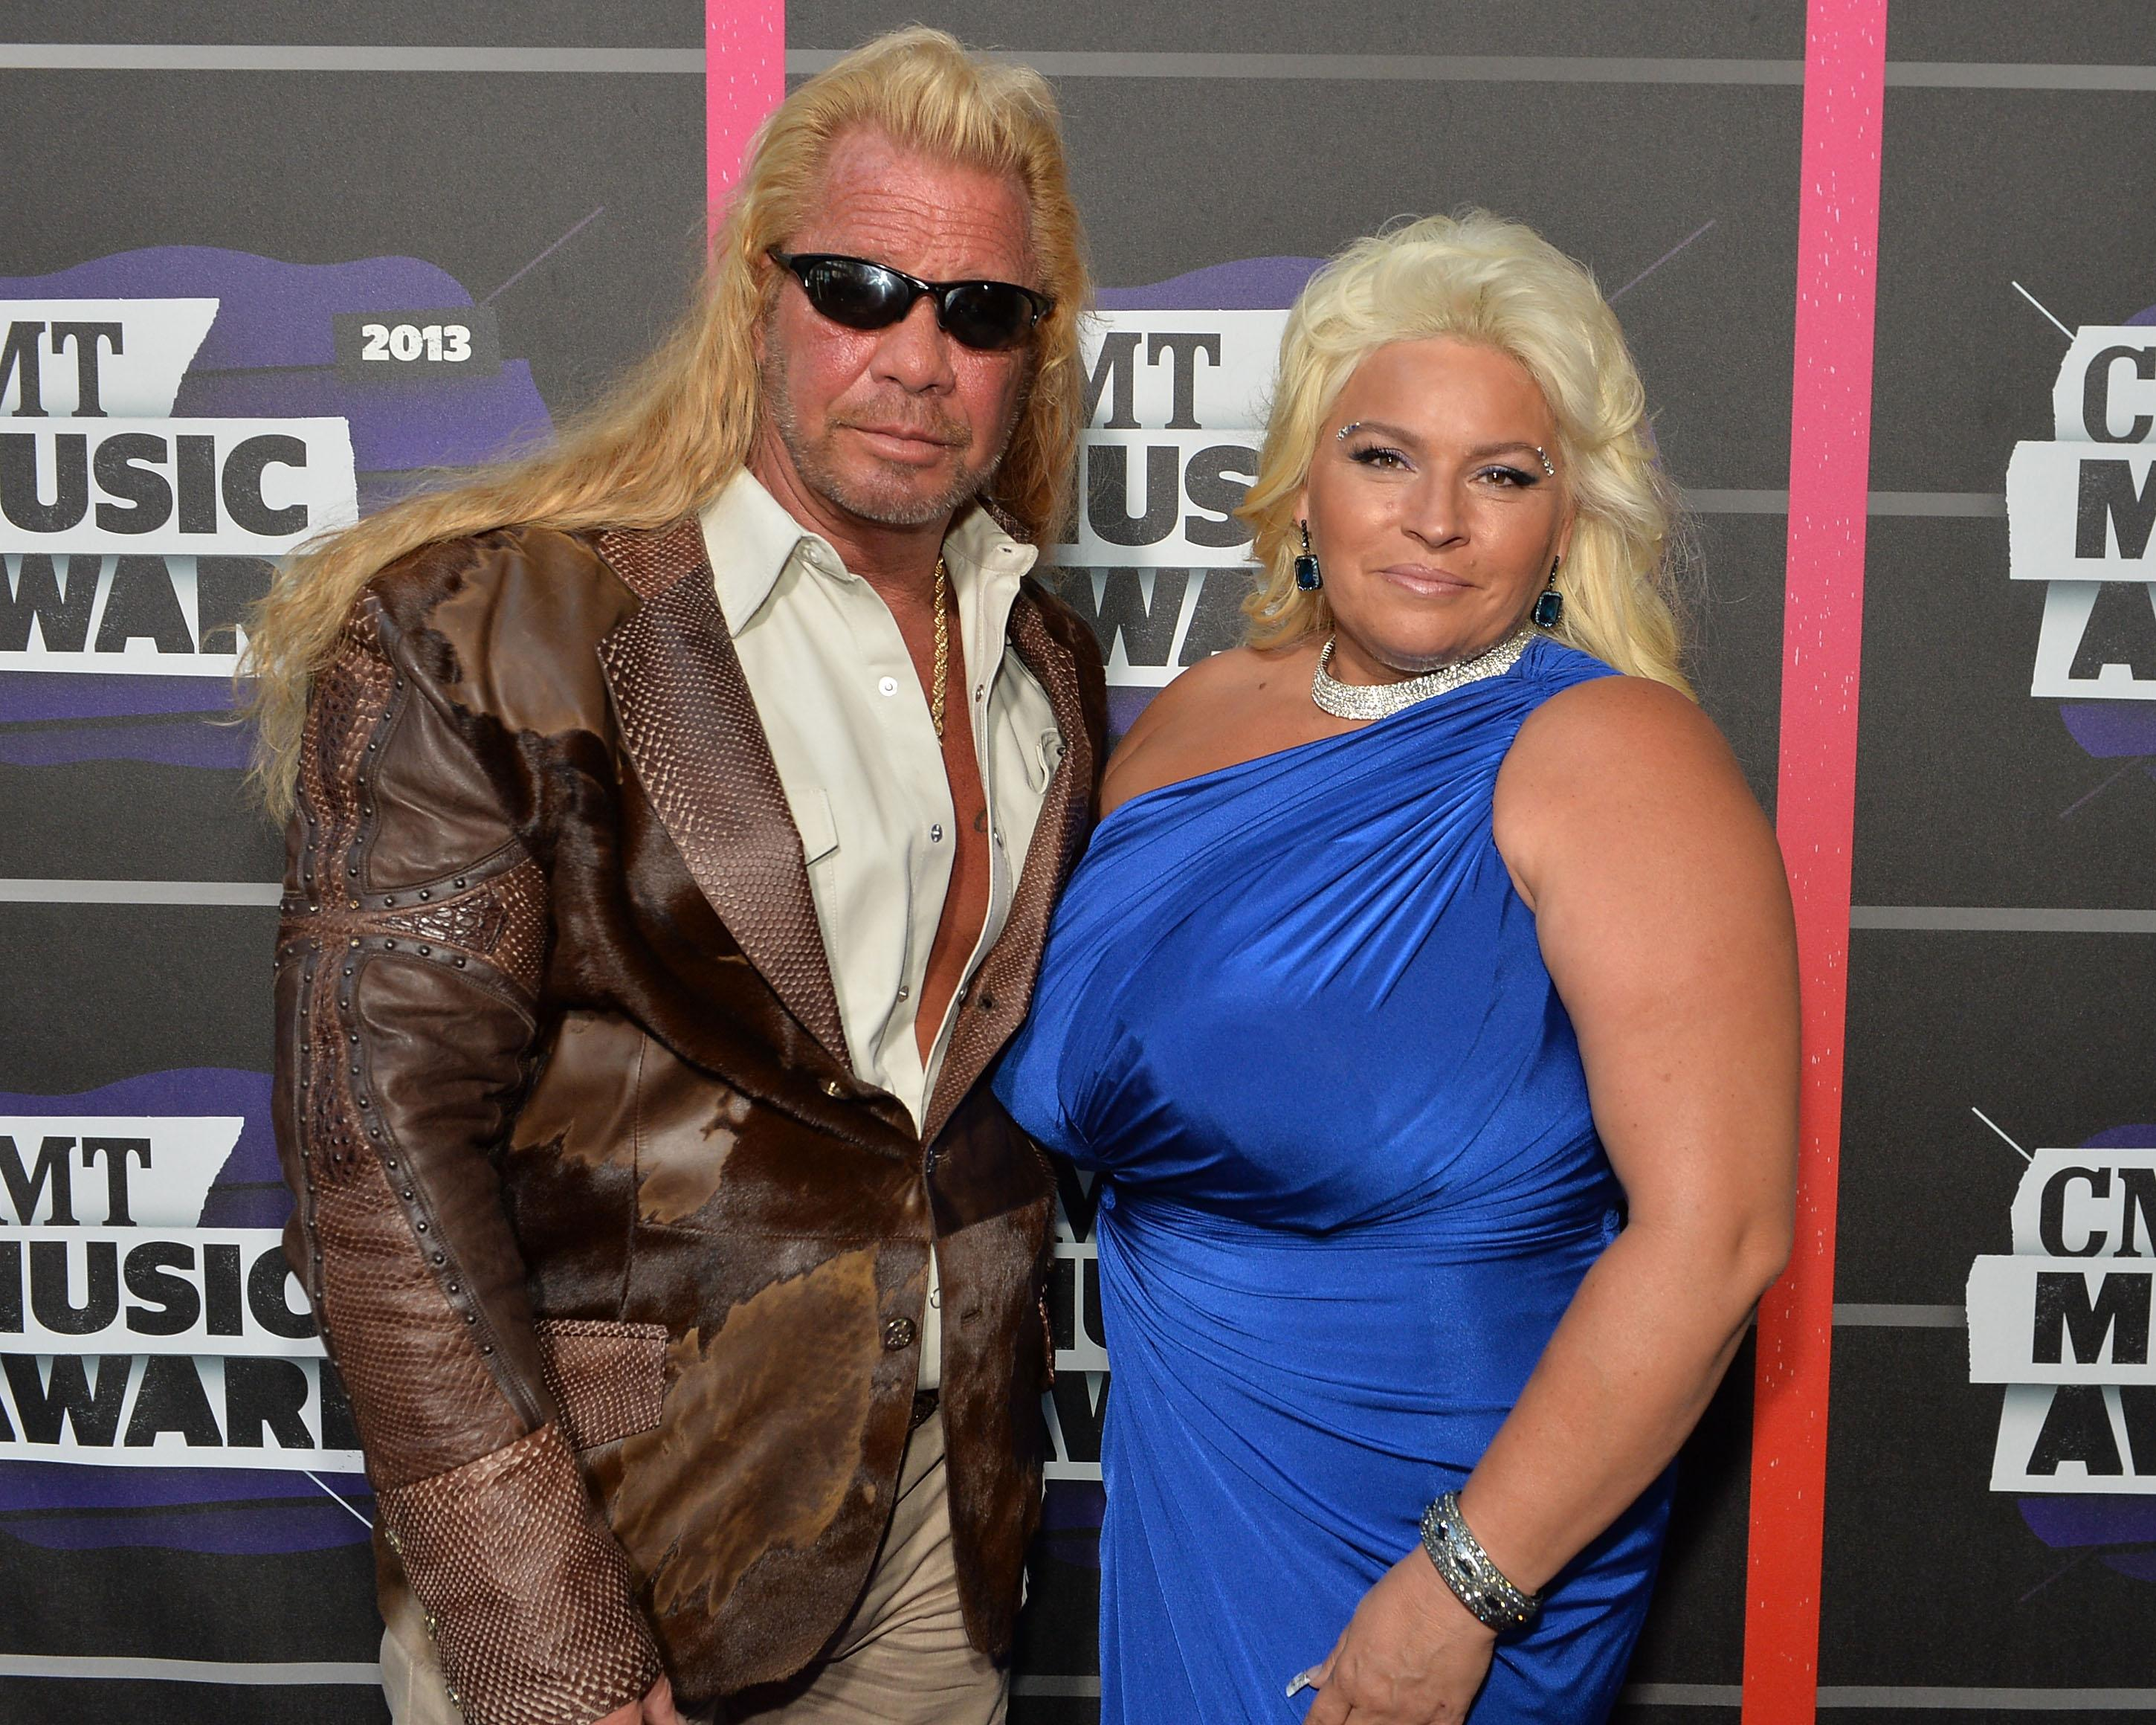 Beth Chapman Has Taken A Turn For The Worse